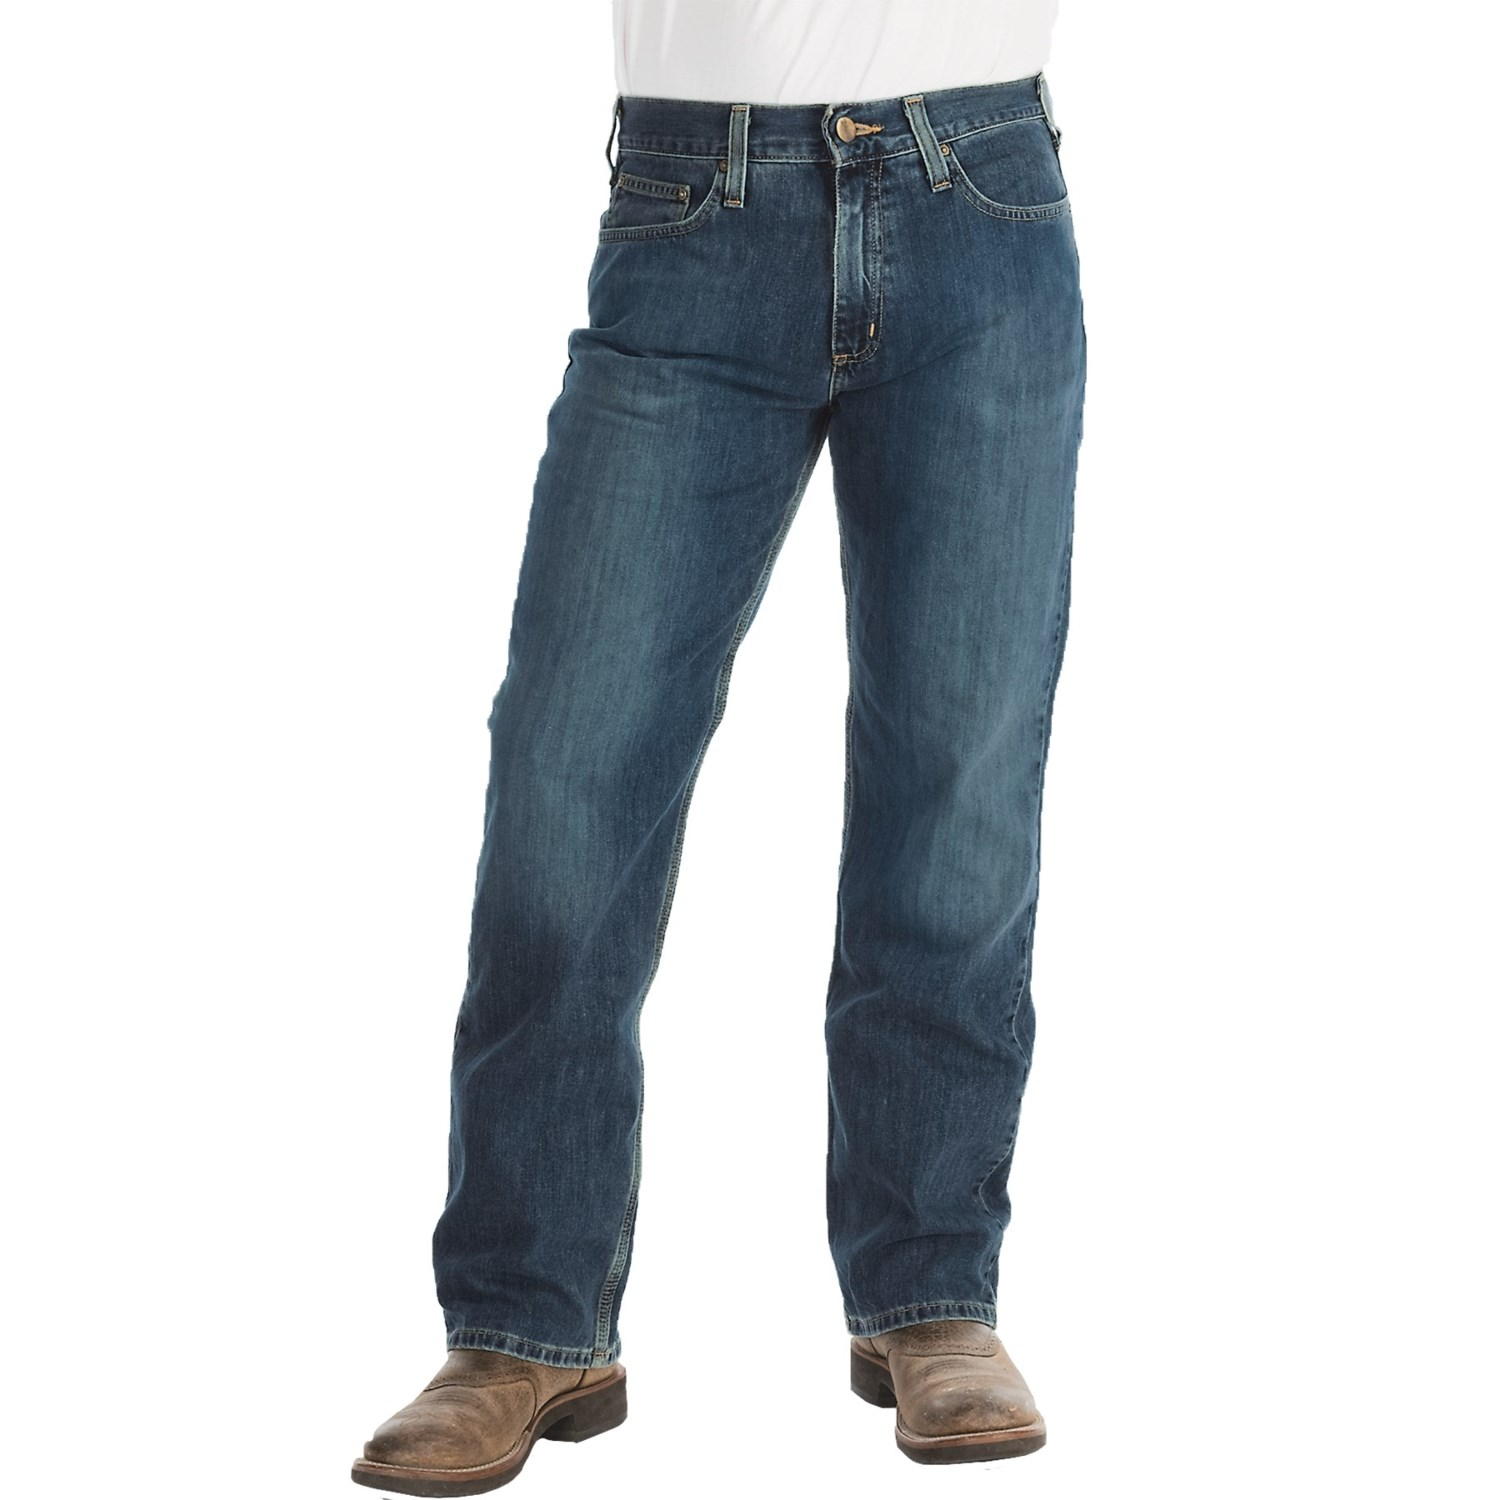 Shop American Eagle Outfitters for men's and women's jeans, T's, shoes and more. All styles are available in additional sizes only at trueiuptaf.gq Men's Jeans Skinny Jeans Slim Fit Jeans Tapered Jeans Straight Jeans Bootcut Jeans Relaxed Fit Jeans Loose Fit Jeans Baggy Jeans.